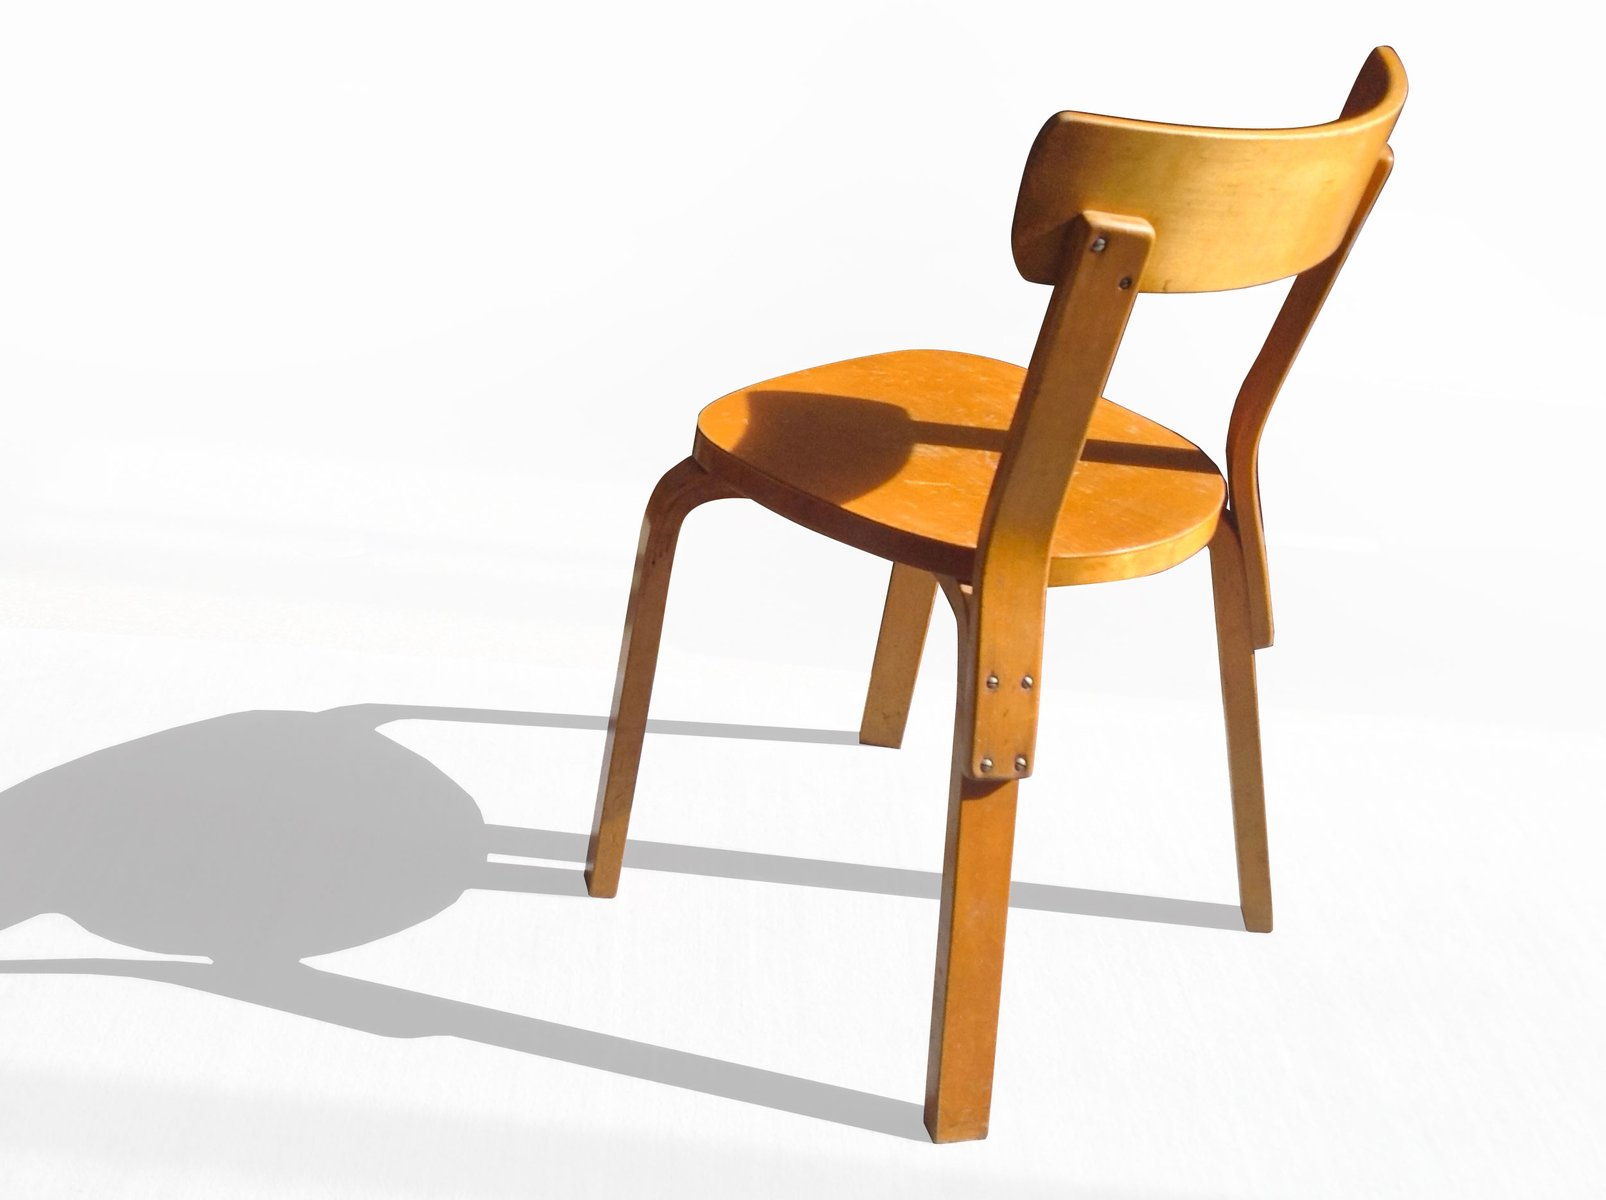 Birch Side Chair by Alvar Aalto for Artek 1937 for sale at Pamono